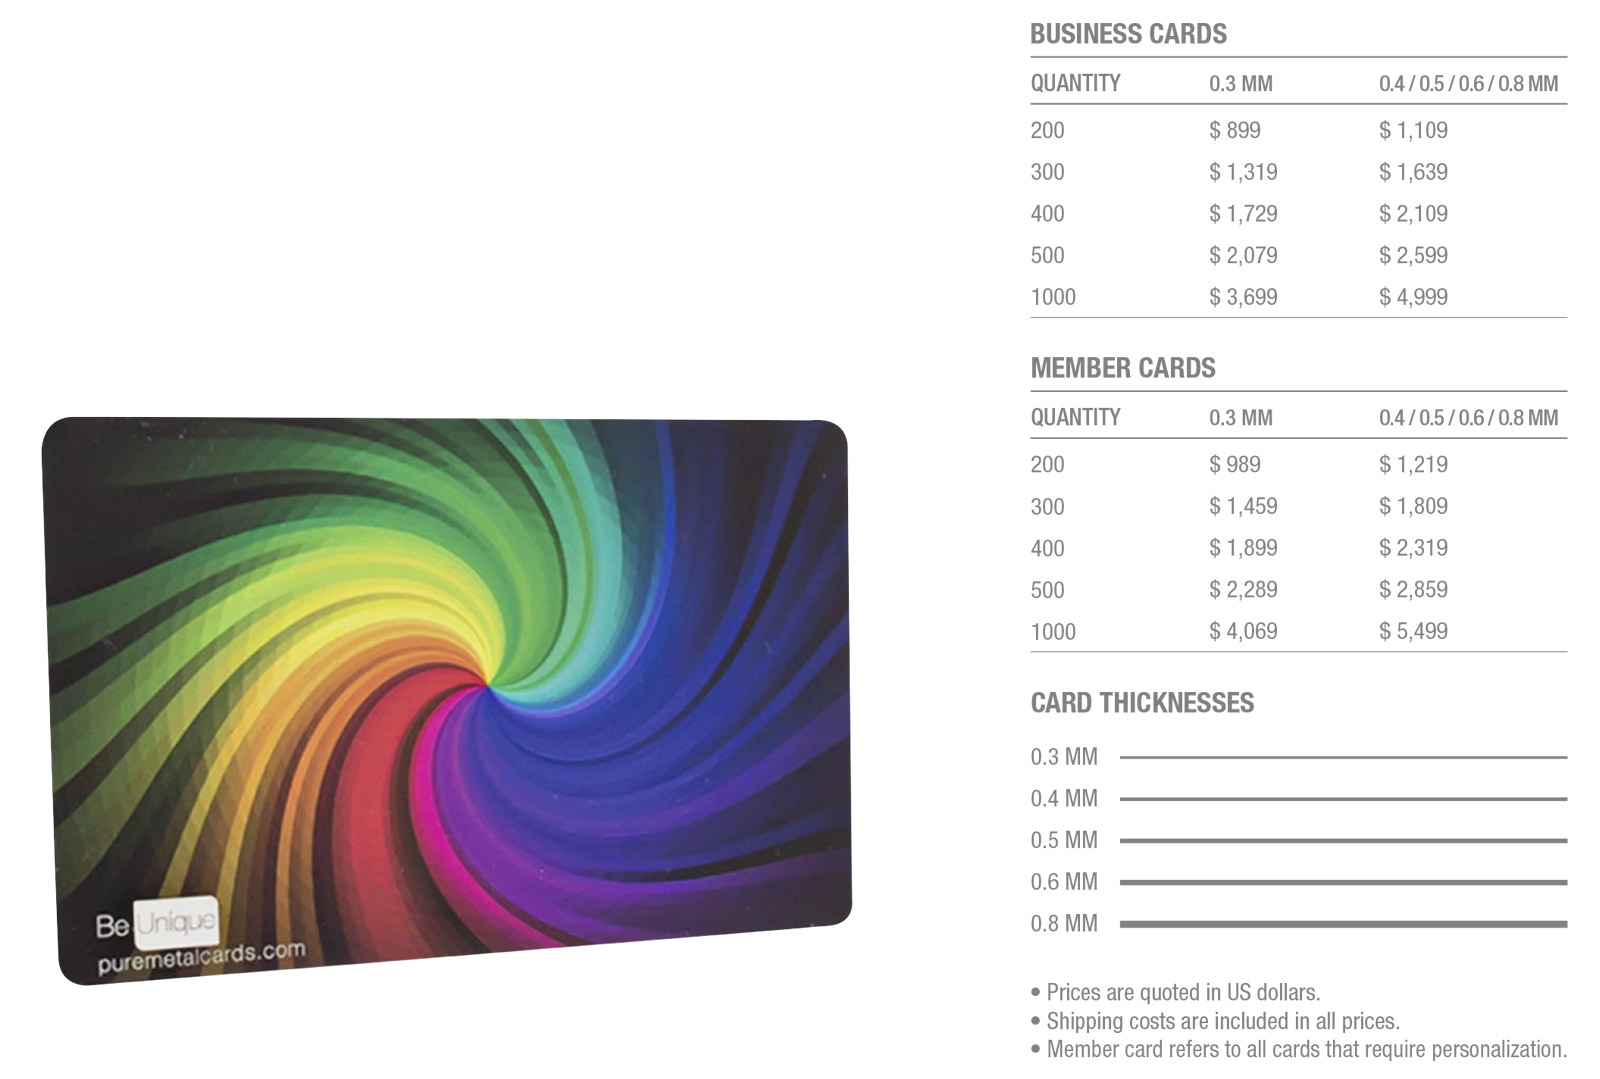 Stainless steel full color business cards pure metal cards color stainless steel cards pricing standard stainless steel business cards in full color reheart Gallery